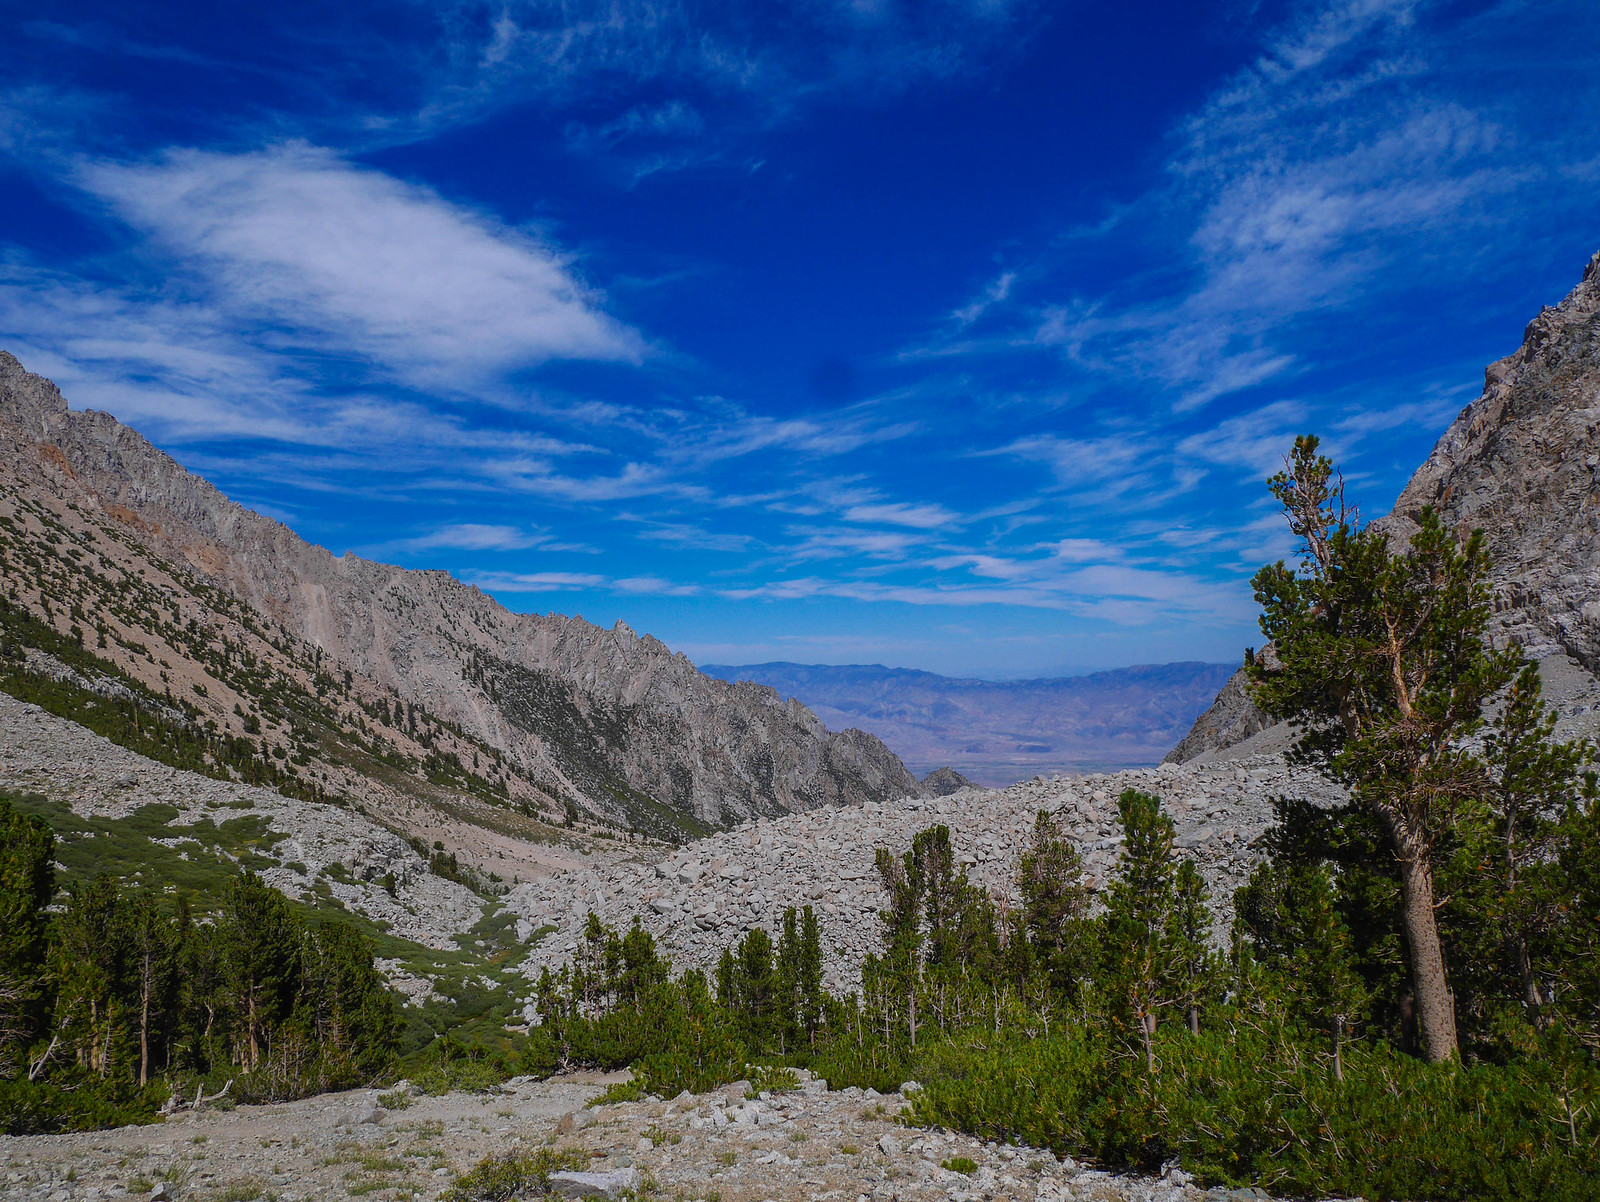 Owens Valley from the Shepherds Pass trail. I had cell service here so checked in with loved ones.